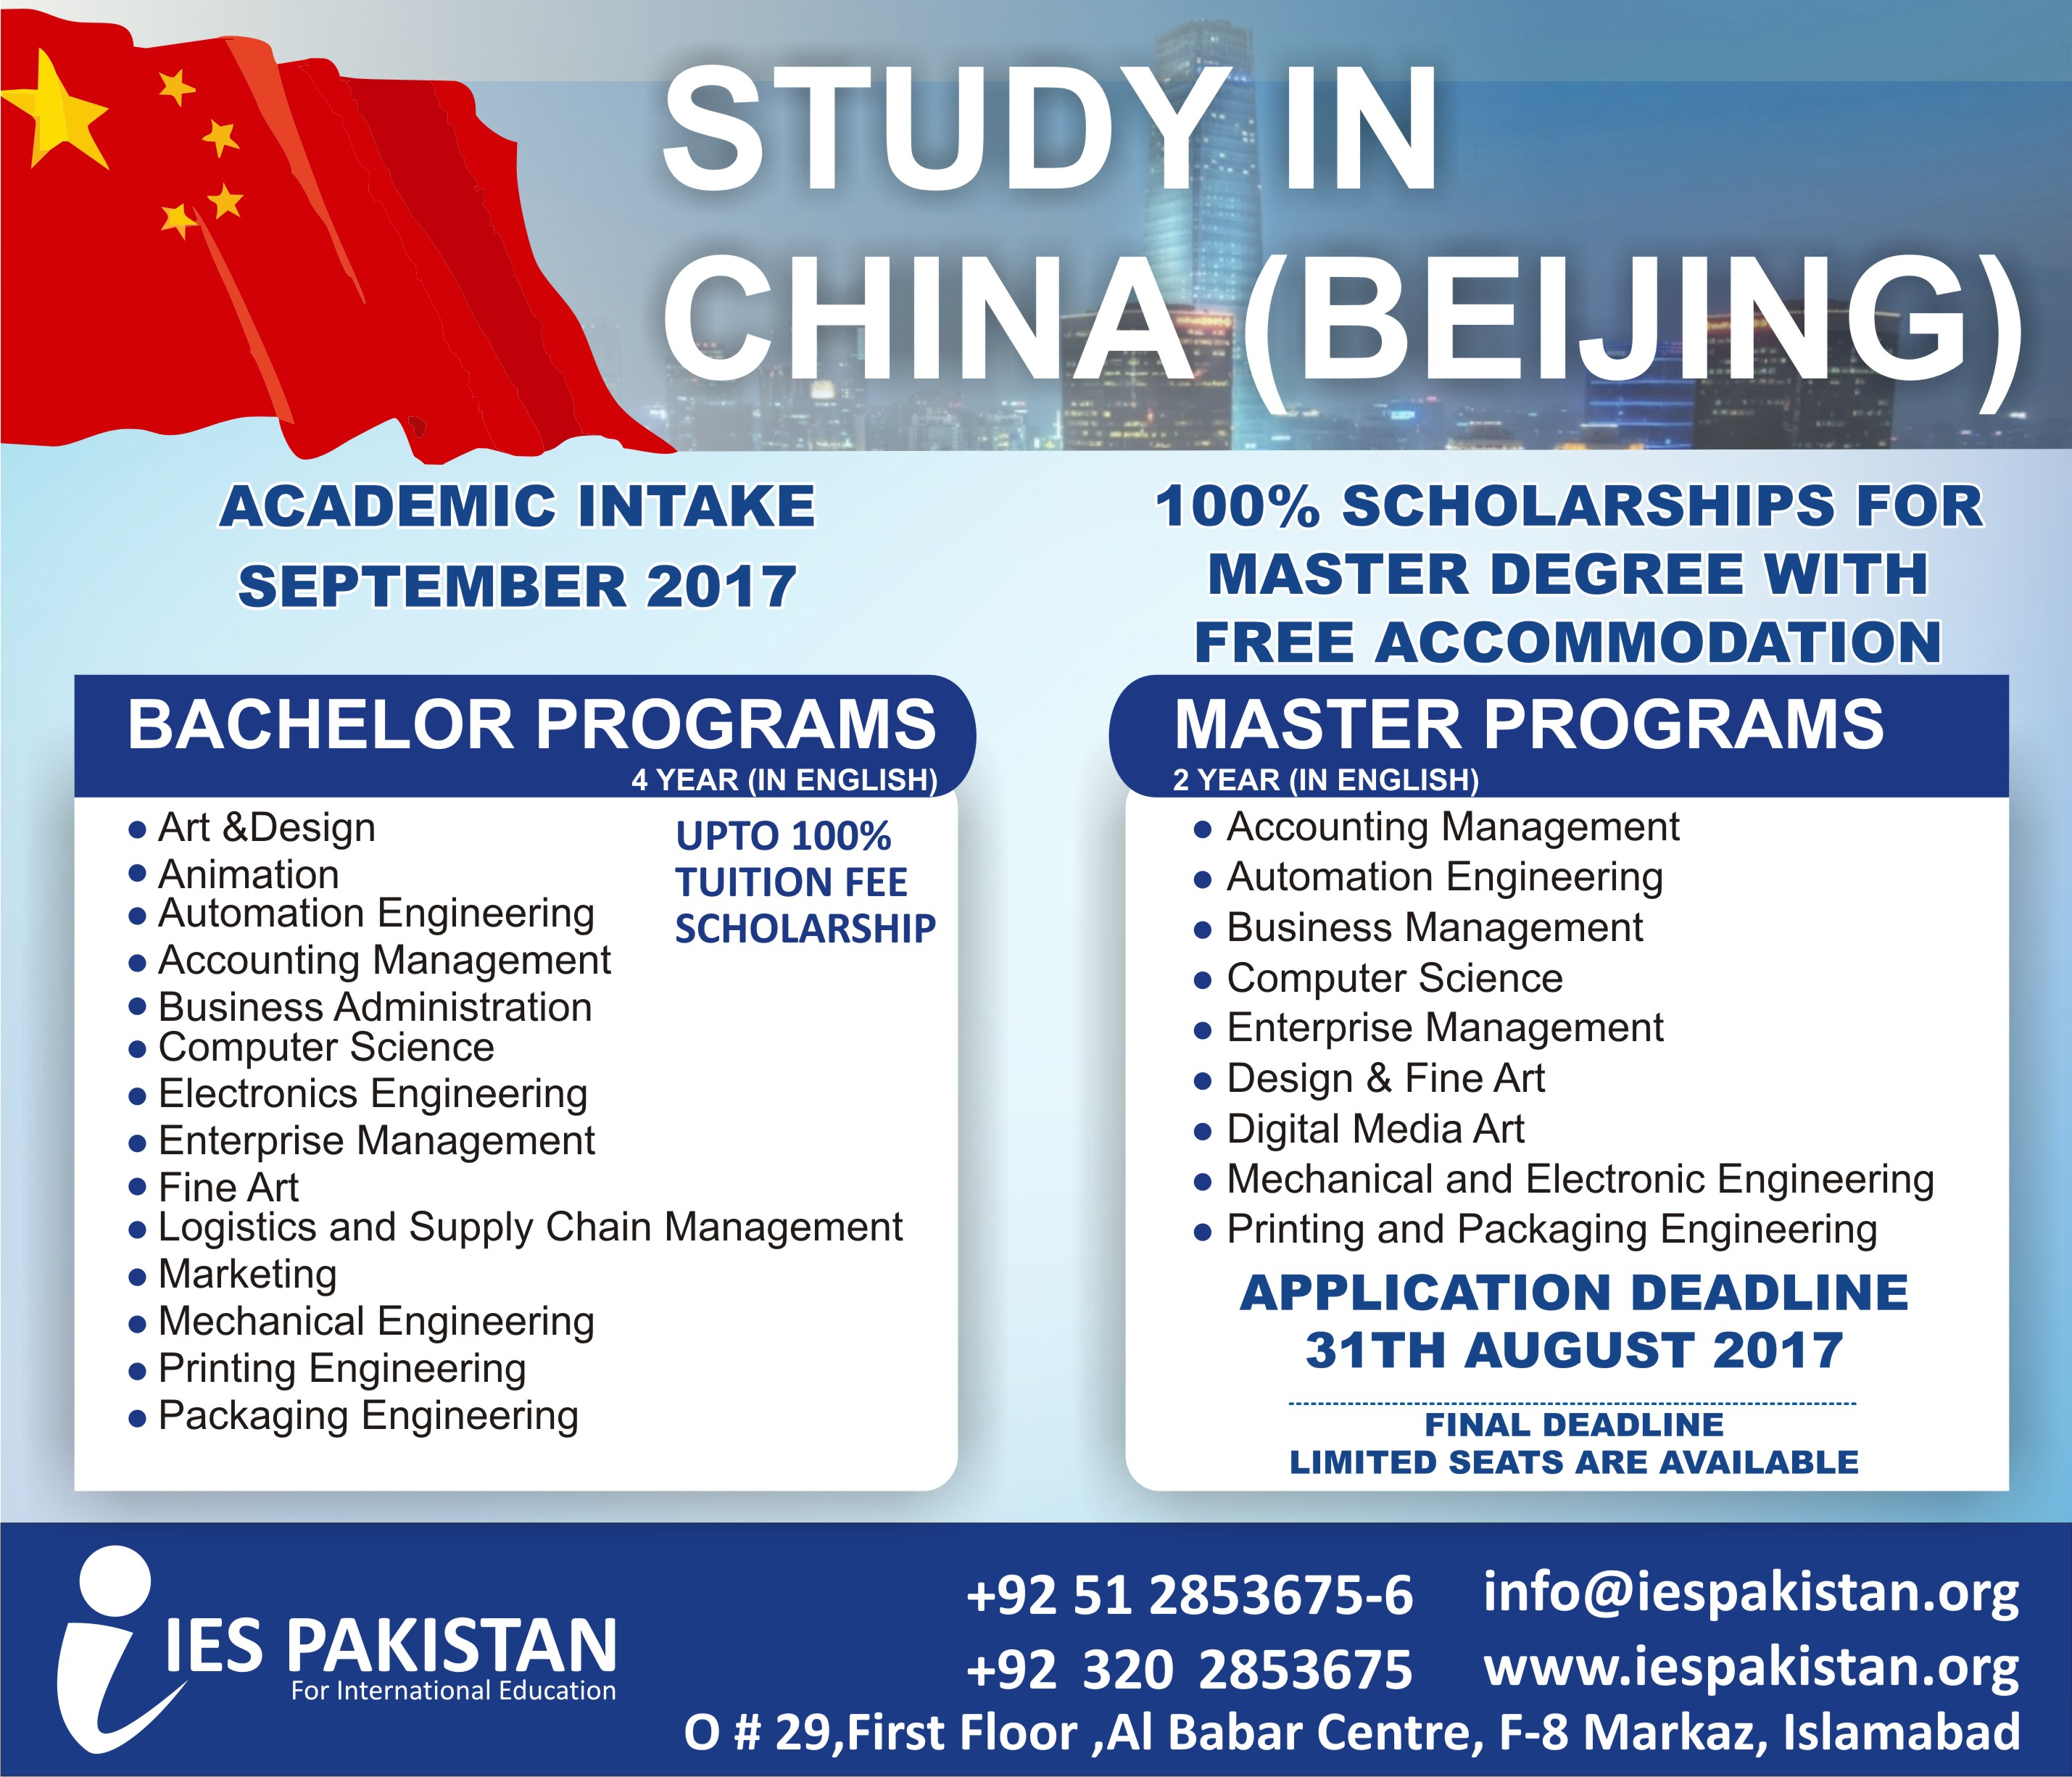 Study in China with 100% Scholarship and free Accommodation